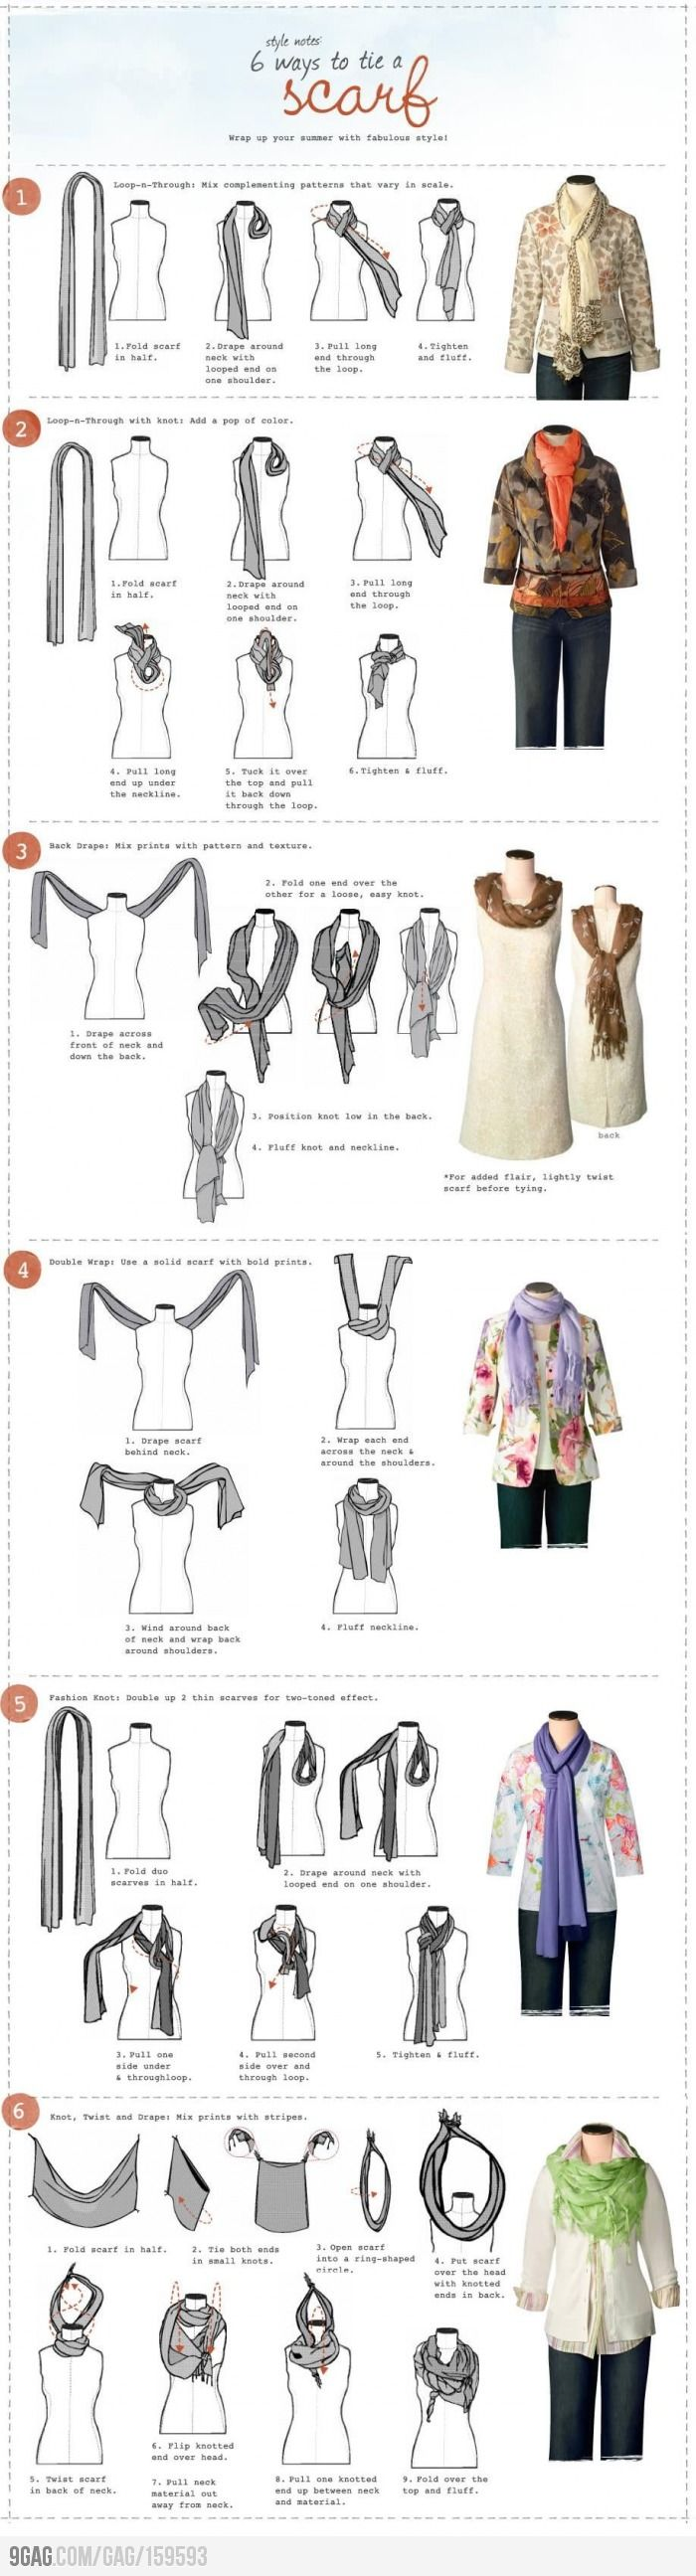 New ways to tie all those beautiful scarfs you have hanging in your closet!